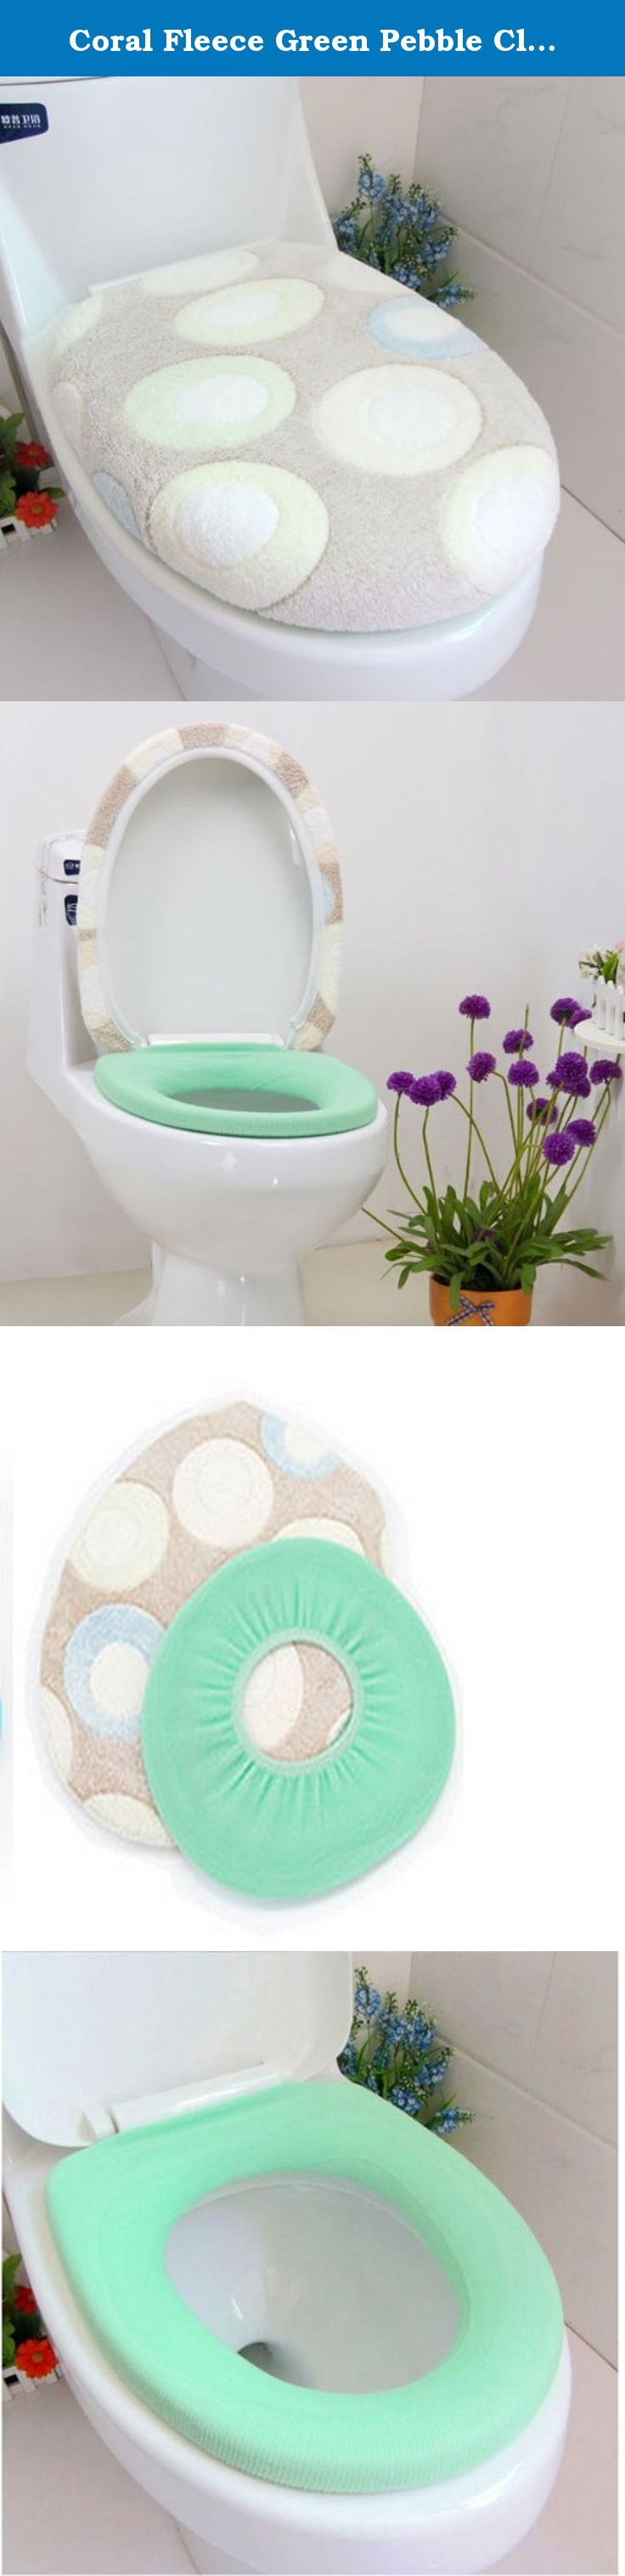 Coral Fleece Green Pebble Closestool Mat Toilet Seats Twinset // Paño grueso y suave de coral de cantos rodados del closestool verde asientos de. Esta tapa del inodoro es muy suave y comfortable.good decoración en el baño aburrido. mantener el calor en días fríos, la atención médica y sanitaria con esta tapa del inodoro. Description:Material: Coral FleeceWeight: 200gSize: 50*50cmColor: As shown in the picturesQuantity: 2pcs/setPackage Include:1 x Set closestool matNote:Products and images...